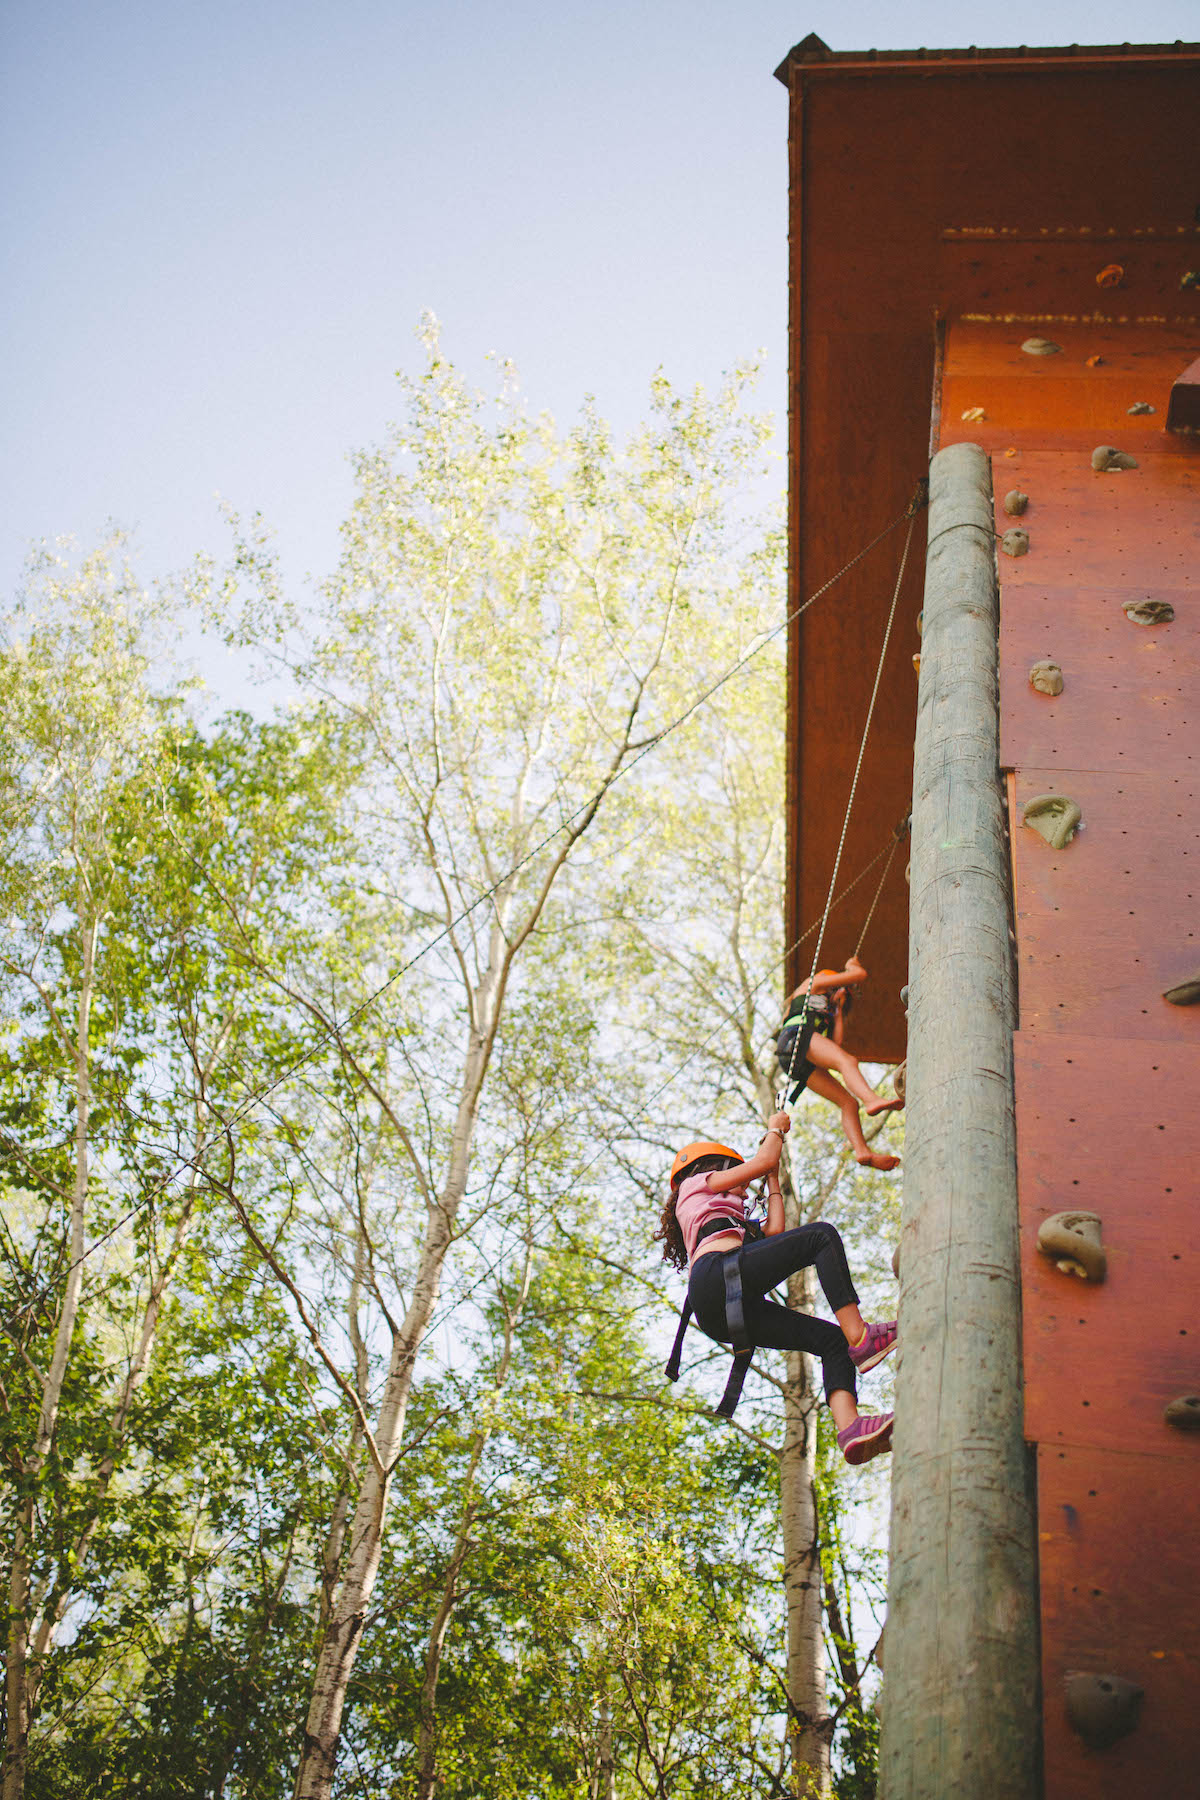 The wall challenges any camper to push personal limits